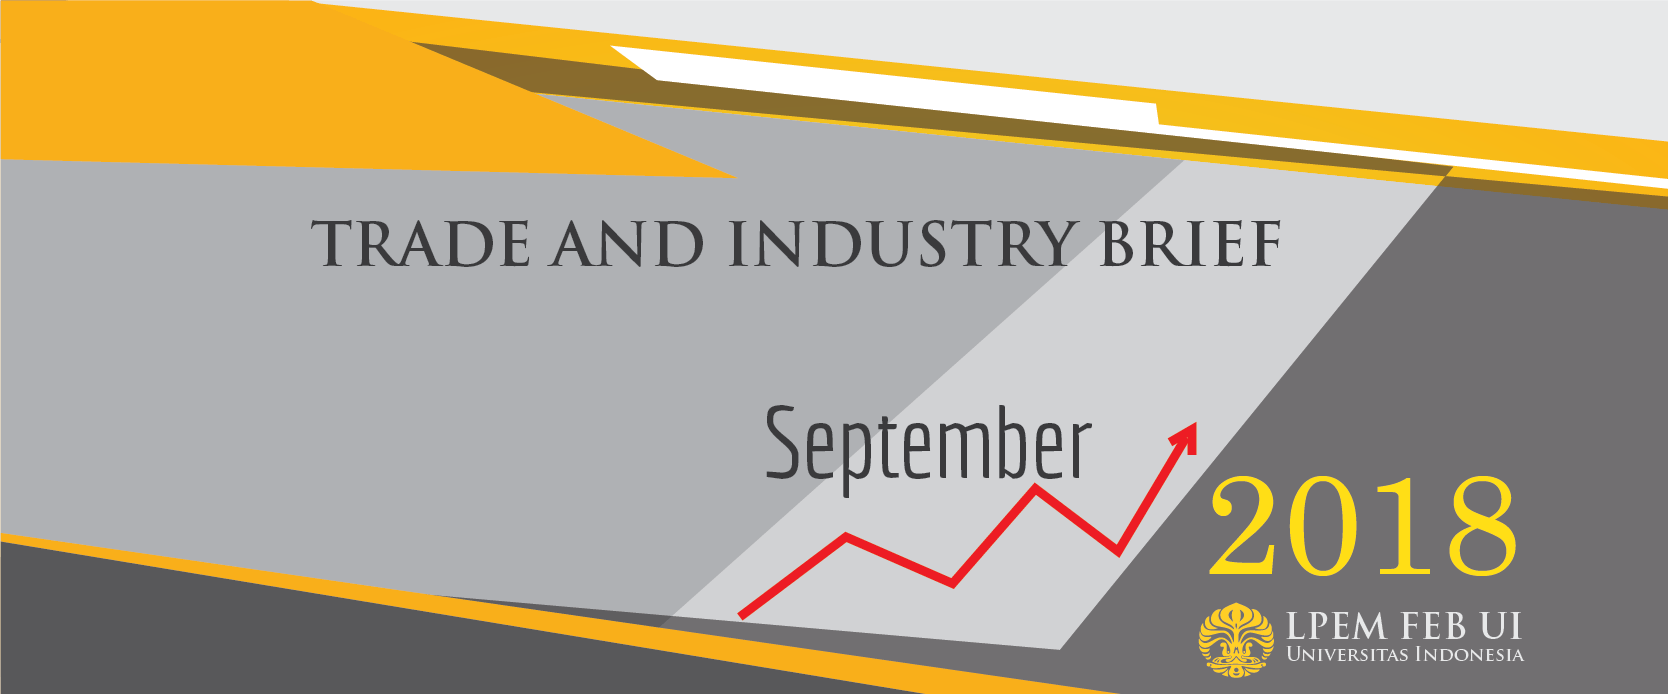 SERI ANALISIS EKONOMI: TRADE AND INDUSTRY BRIEF,  September 2018